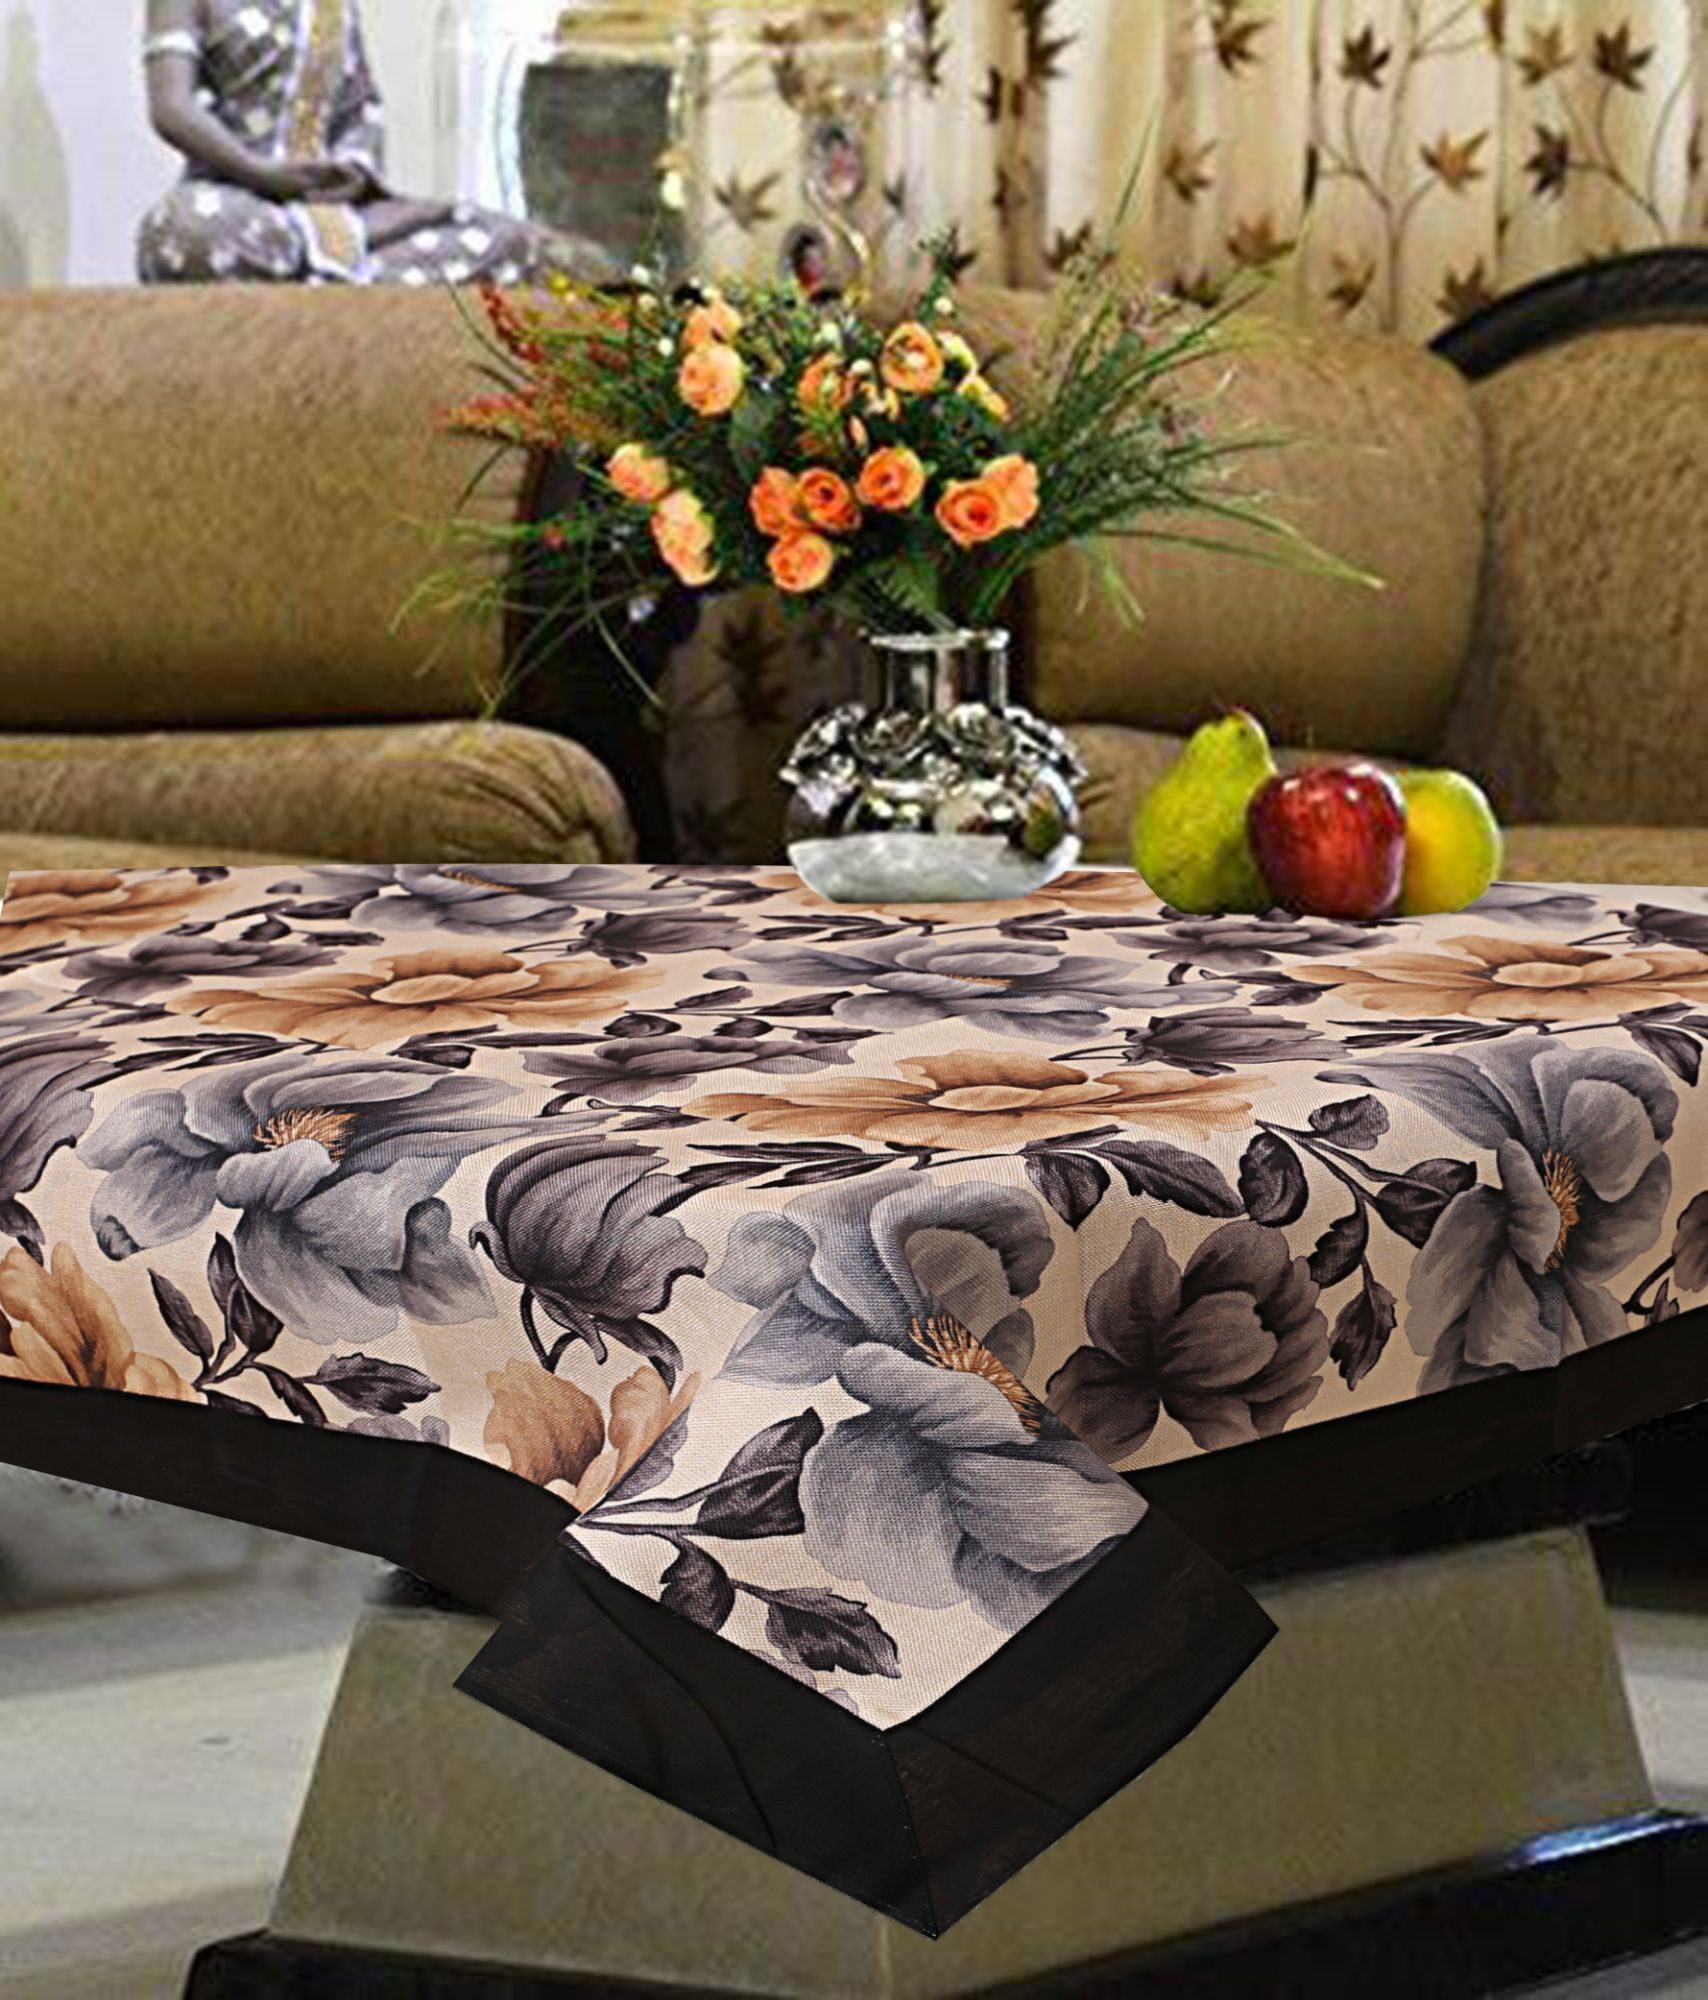 Kuber Industries Floral Design Cotton 4 Seater Center Table Cover 60x40 Inches (Black)-CTKTC1176